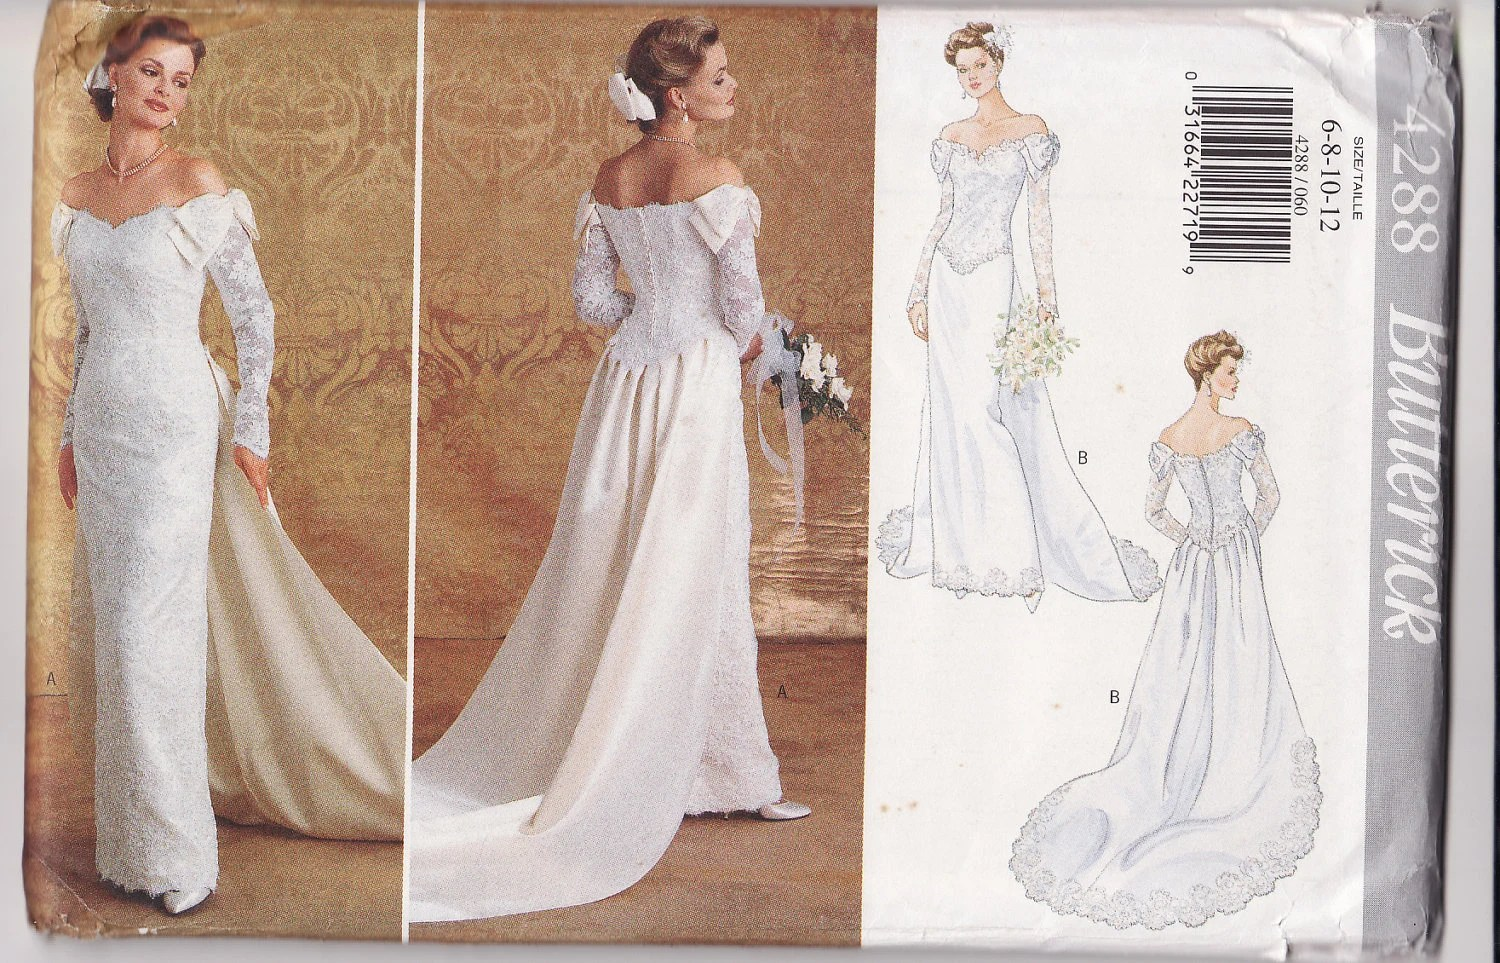 butterick bridal patterns qxubfRBuYP3GA k TdcqhkaUKHtpLklYGrA detachable wedding dress train WEDDING